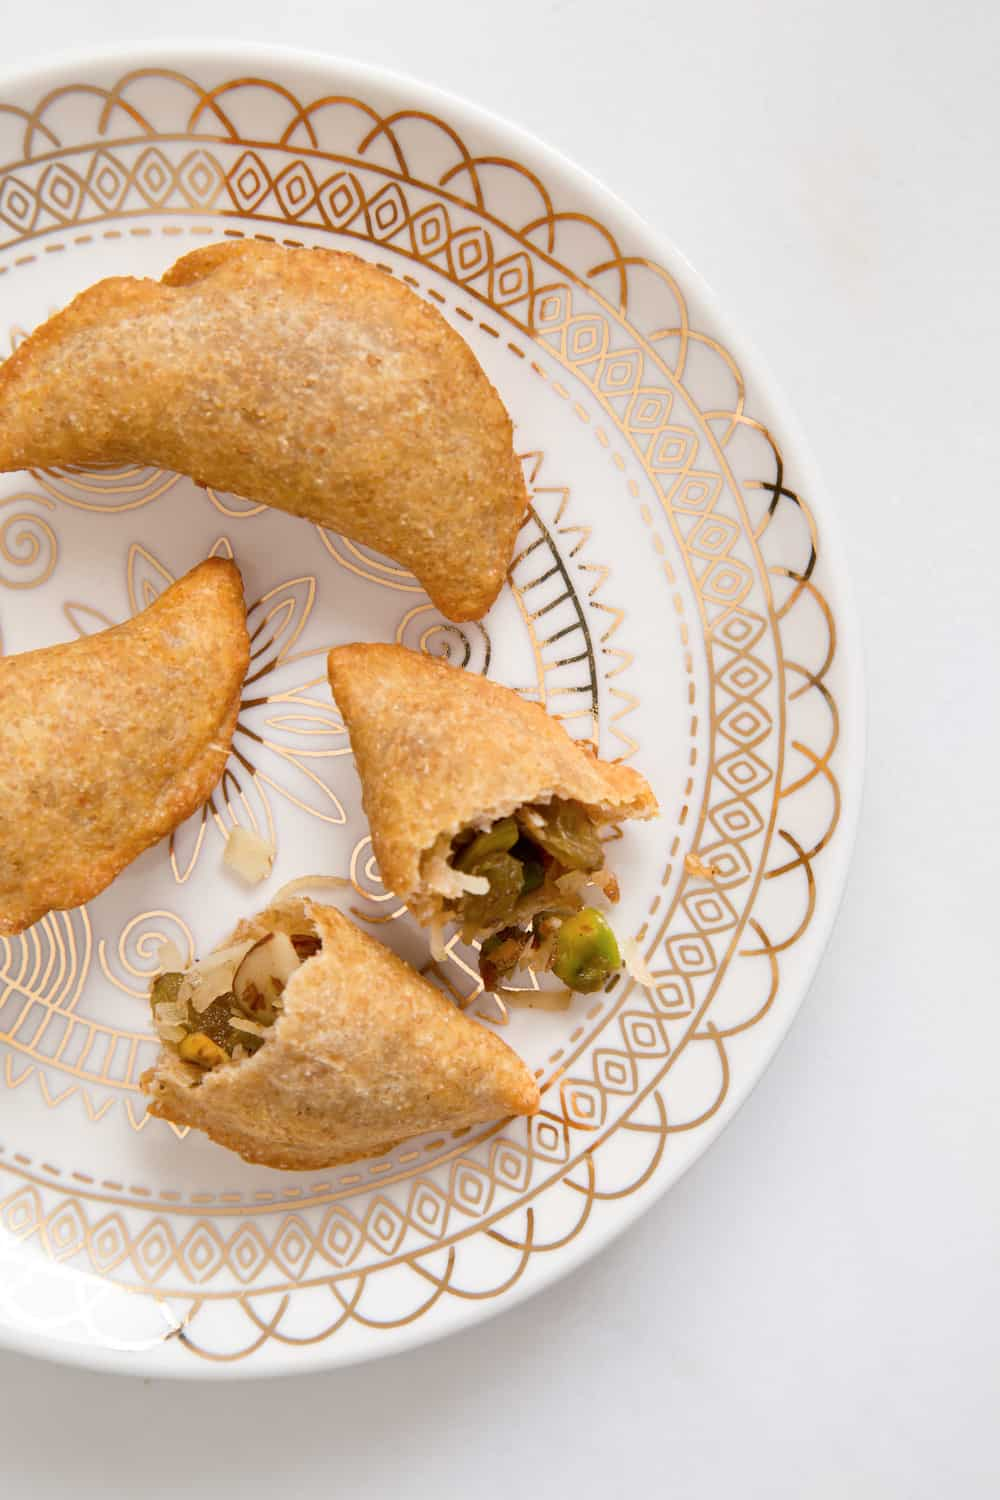 Ethiopian Dessert Pierogies: A Cross-Cultural Treat